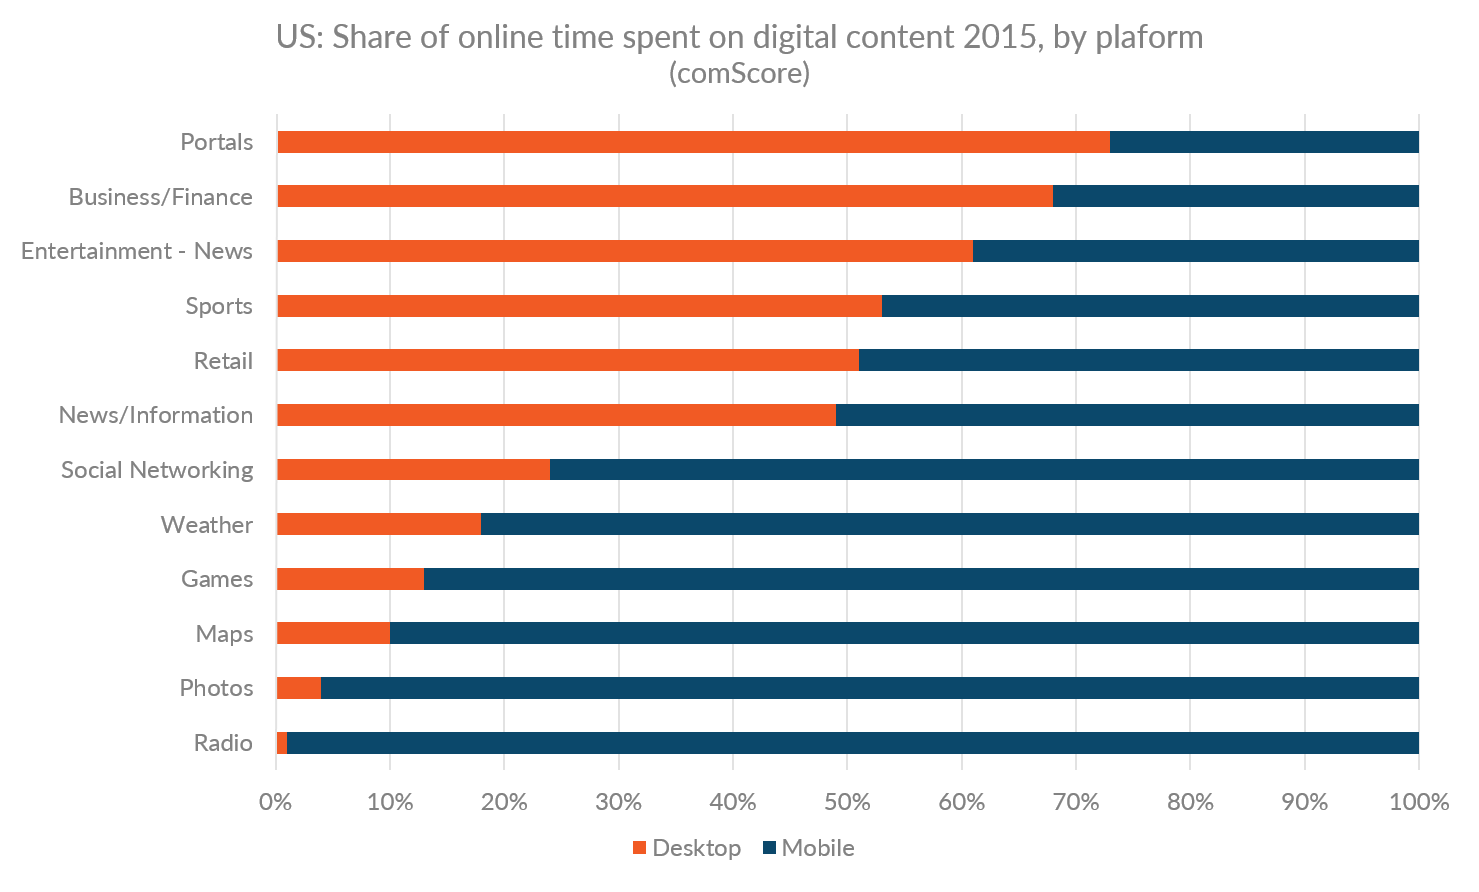 Graph showing the US share of online time spent on various types of  digital content by desktop and mobile